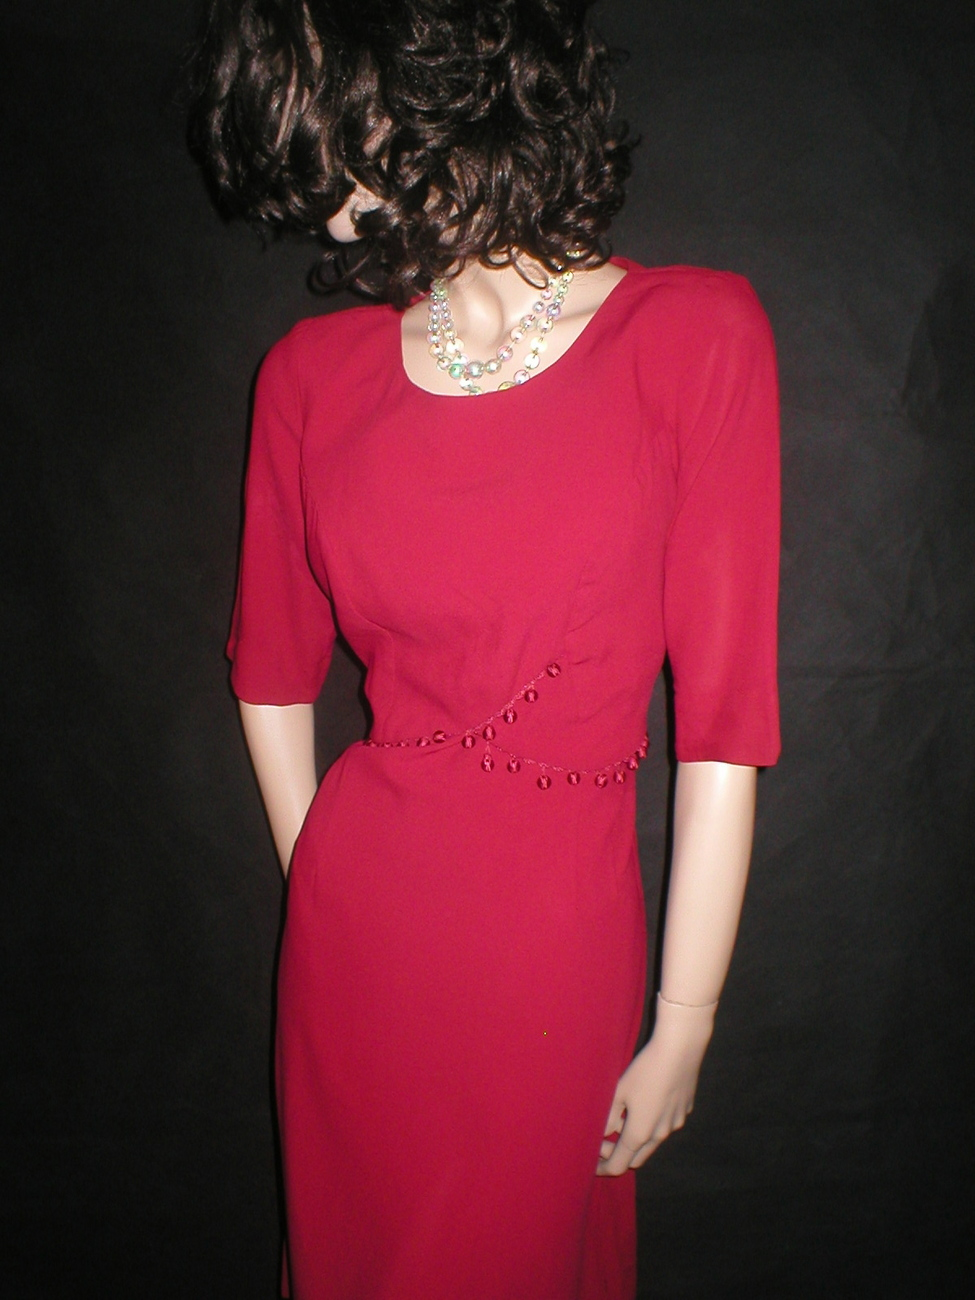 Vintage 50 Best & Co. Red Pom Pom Trim Cocktail Party Dress